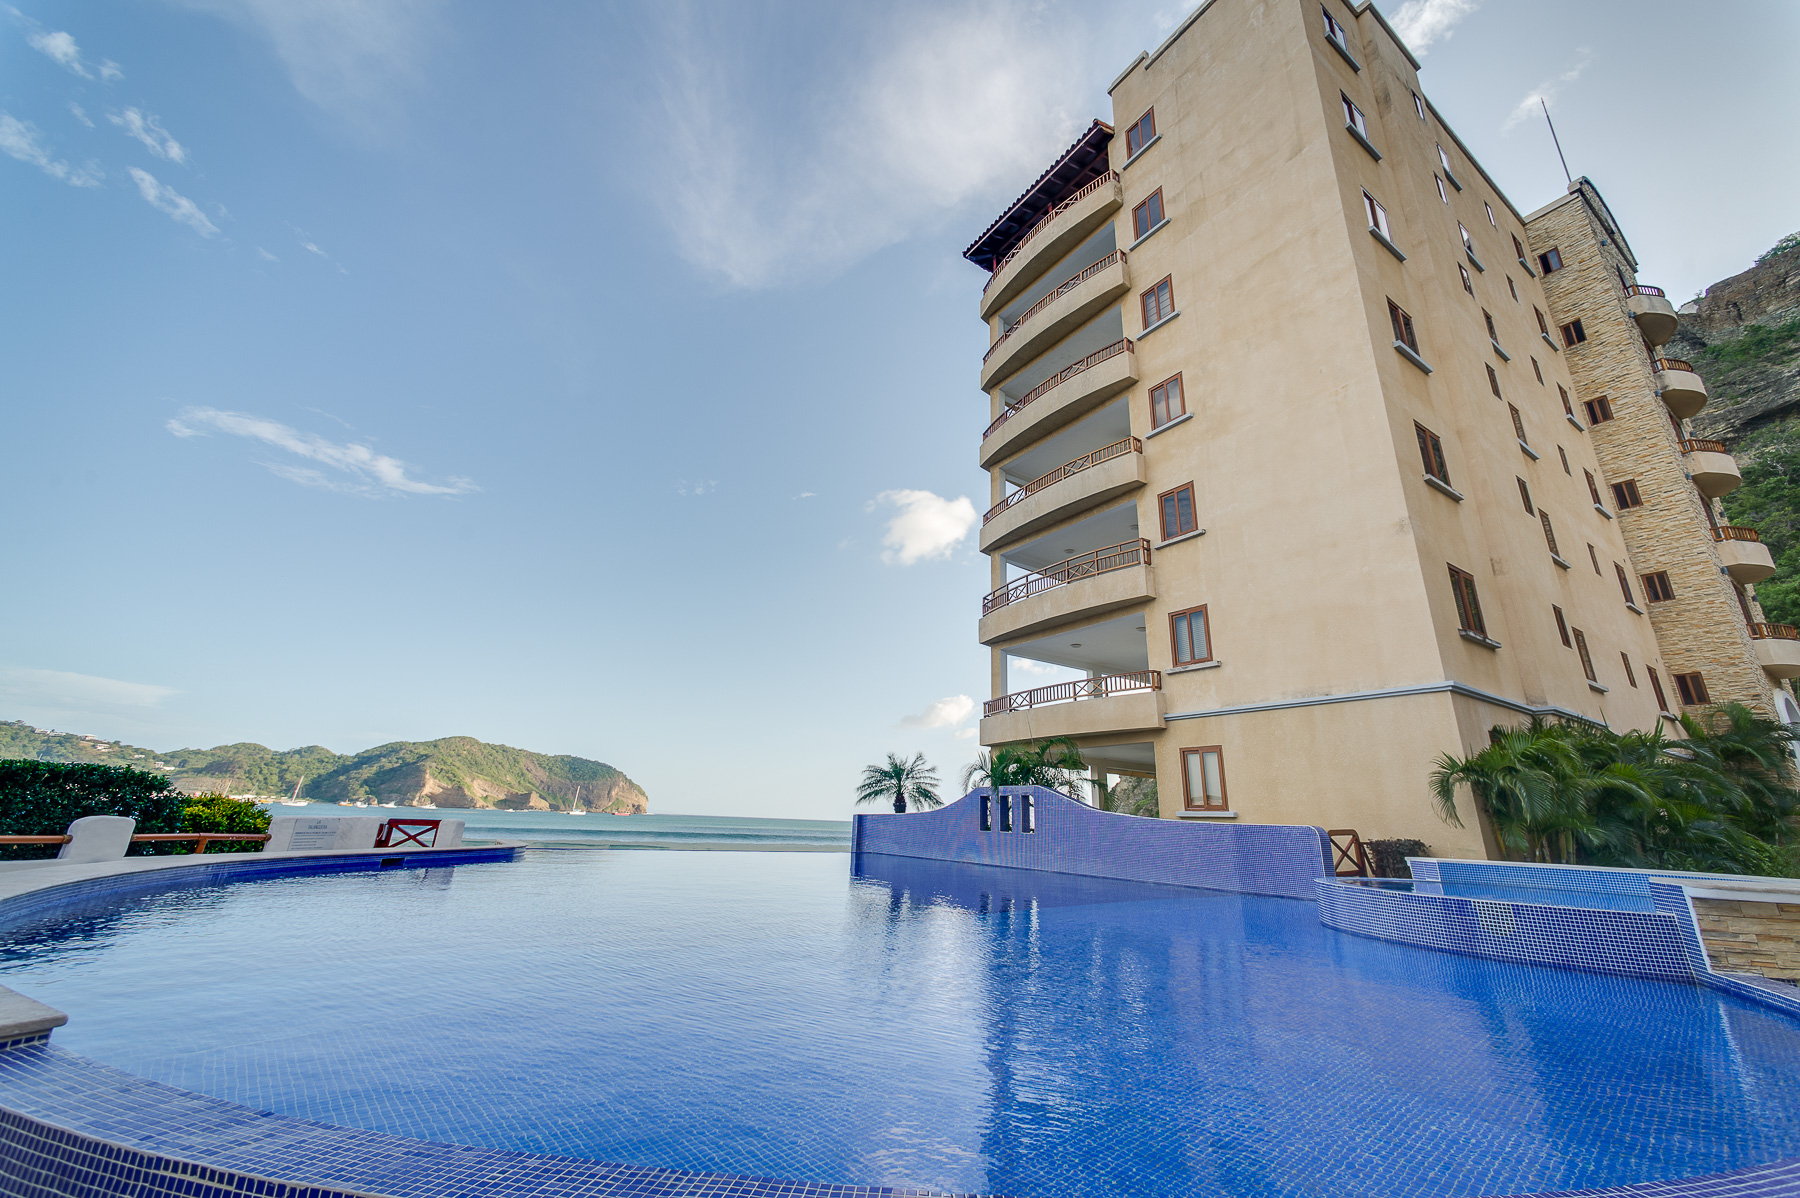 Condominium for Sale at Beach front Condo Living in San Juan del Sur San Juan Del Sur, Rivas, Nicaragua